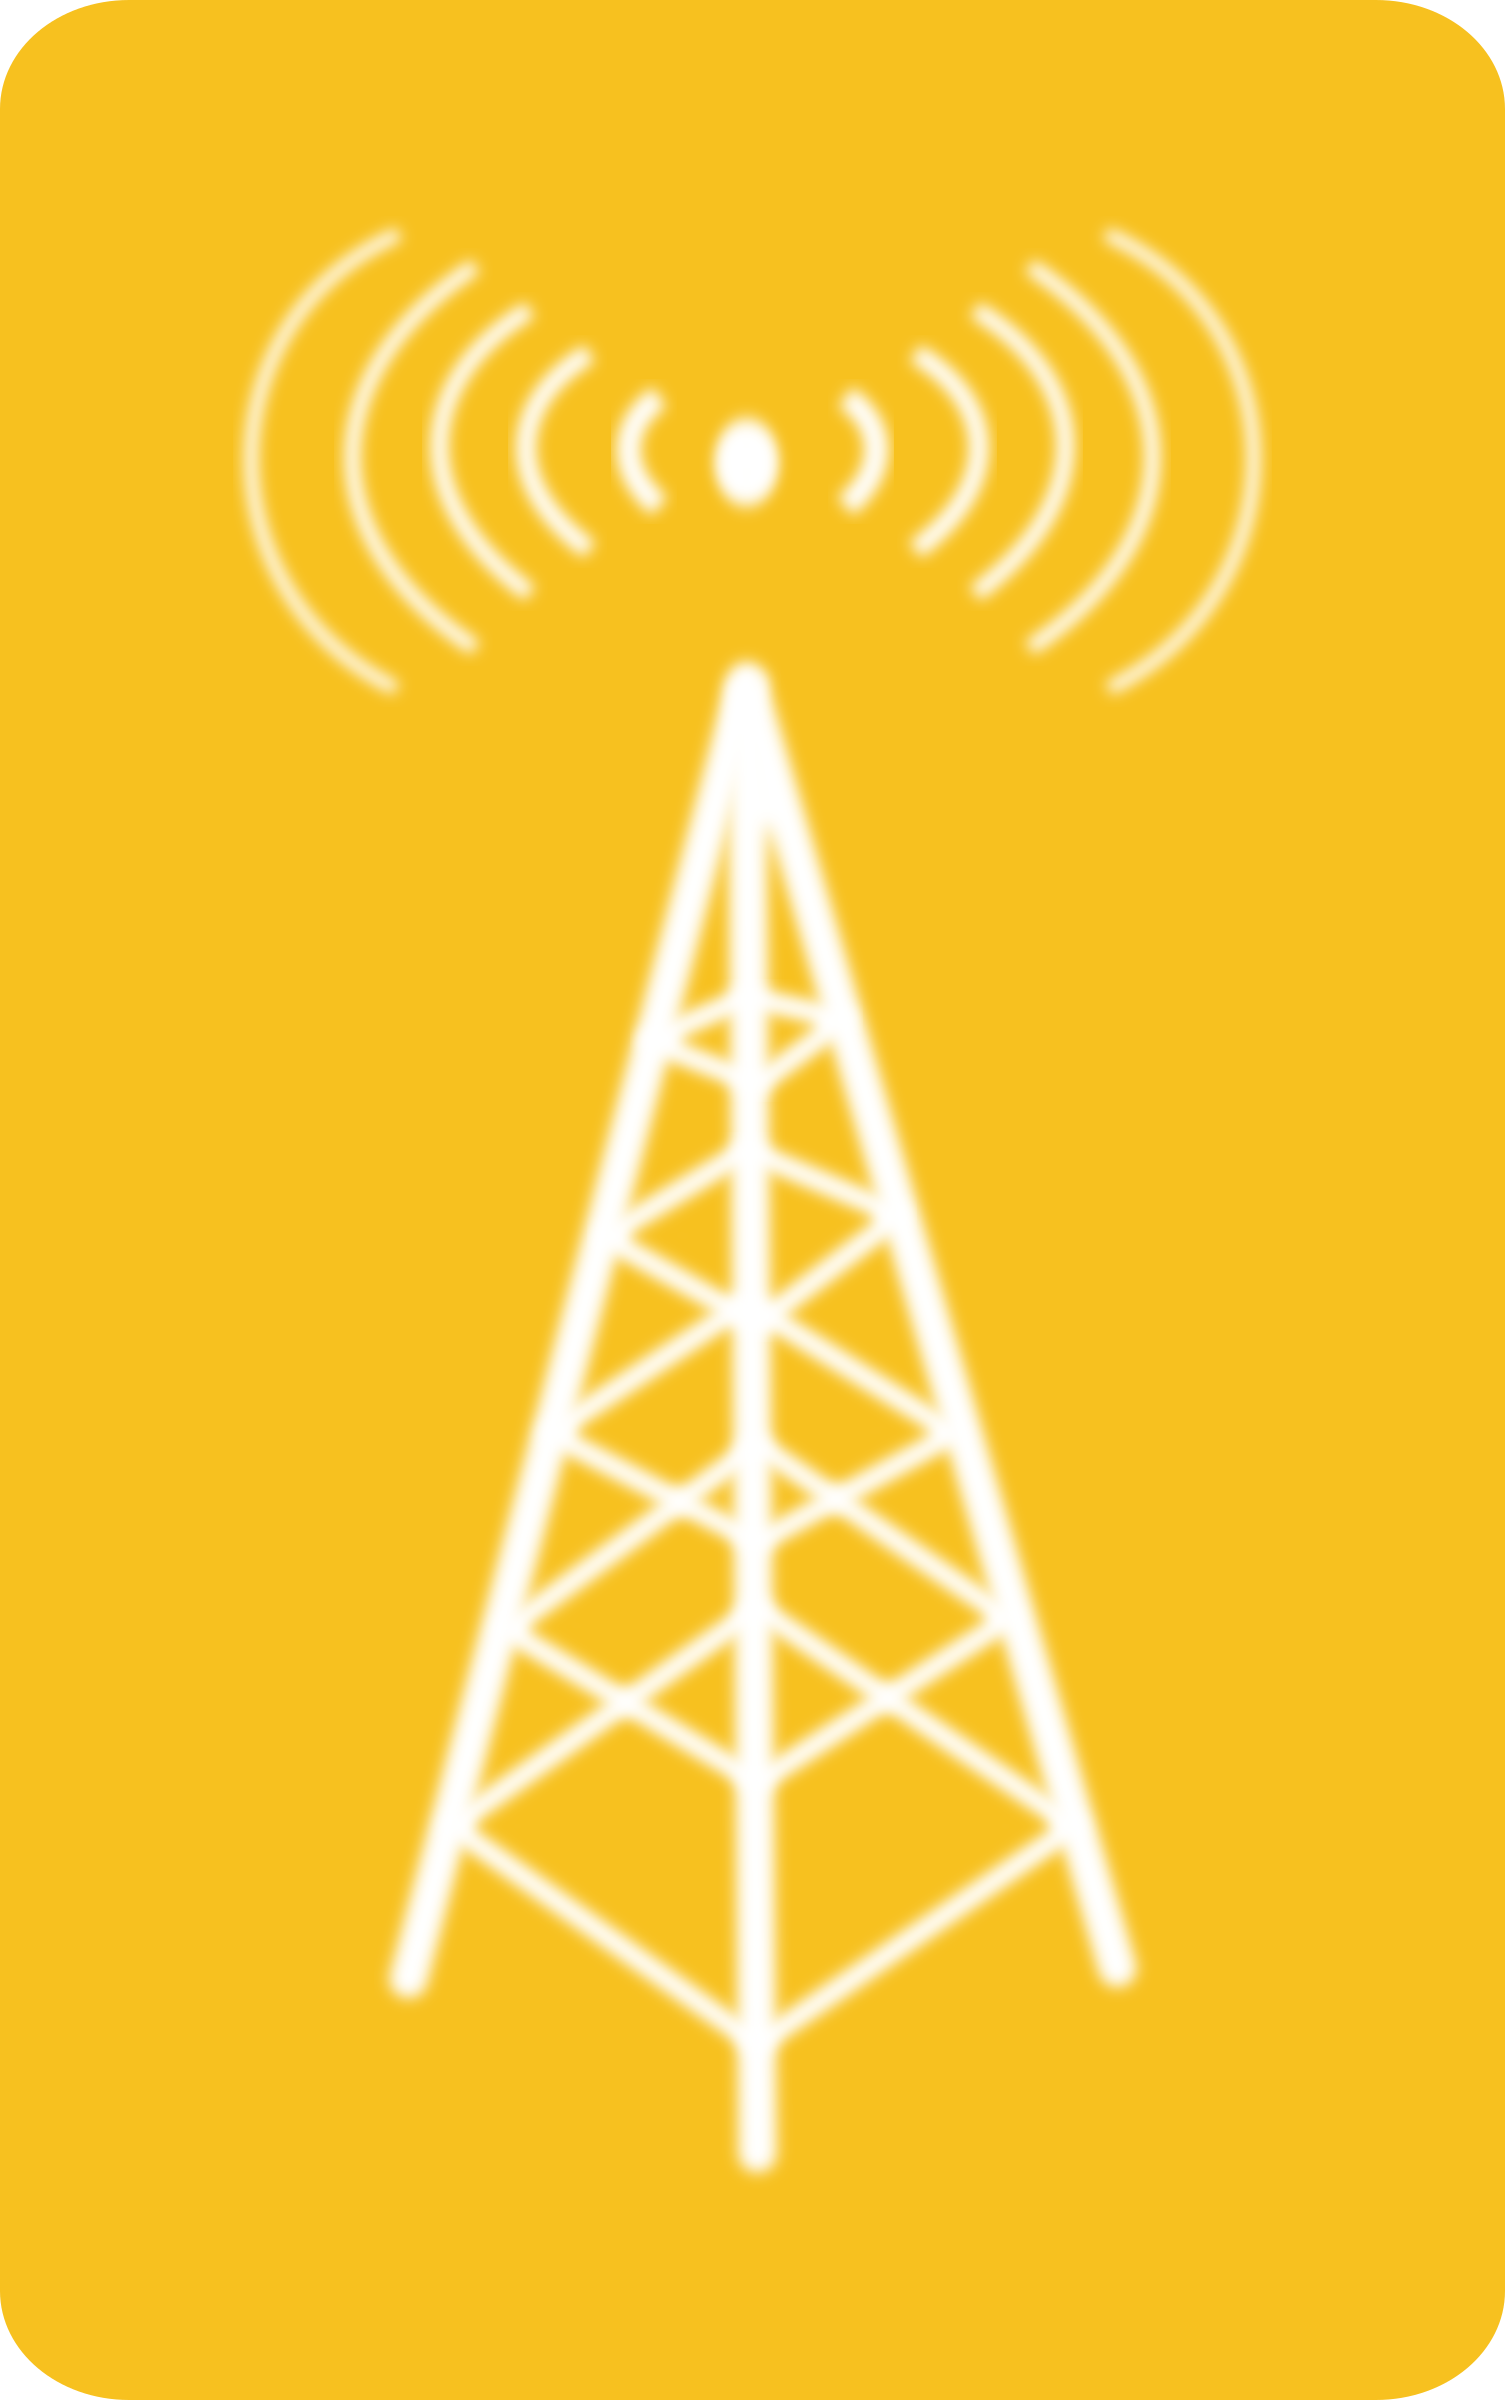 Wifi Broadband Antenna icon by ben